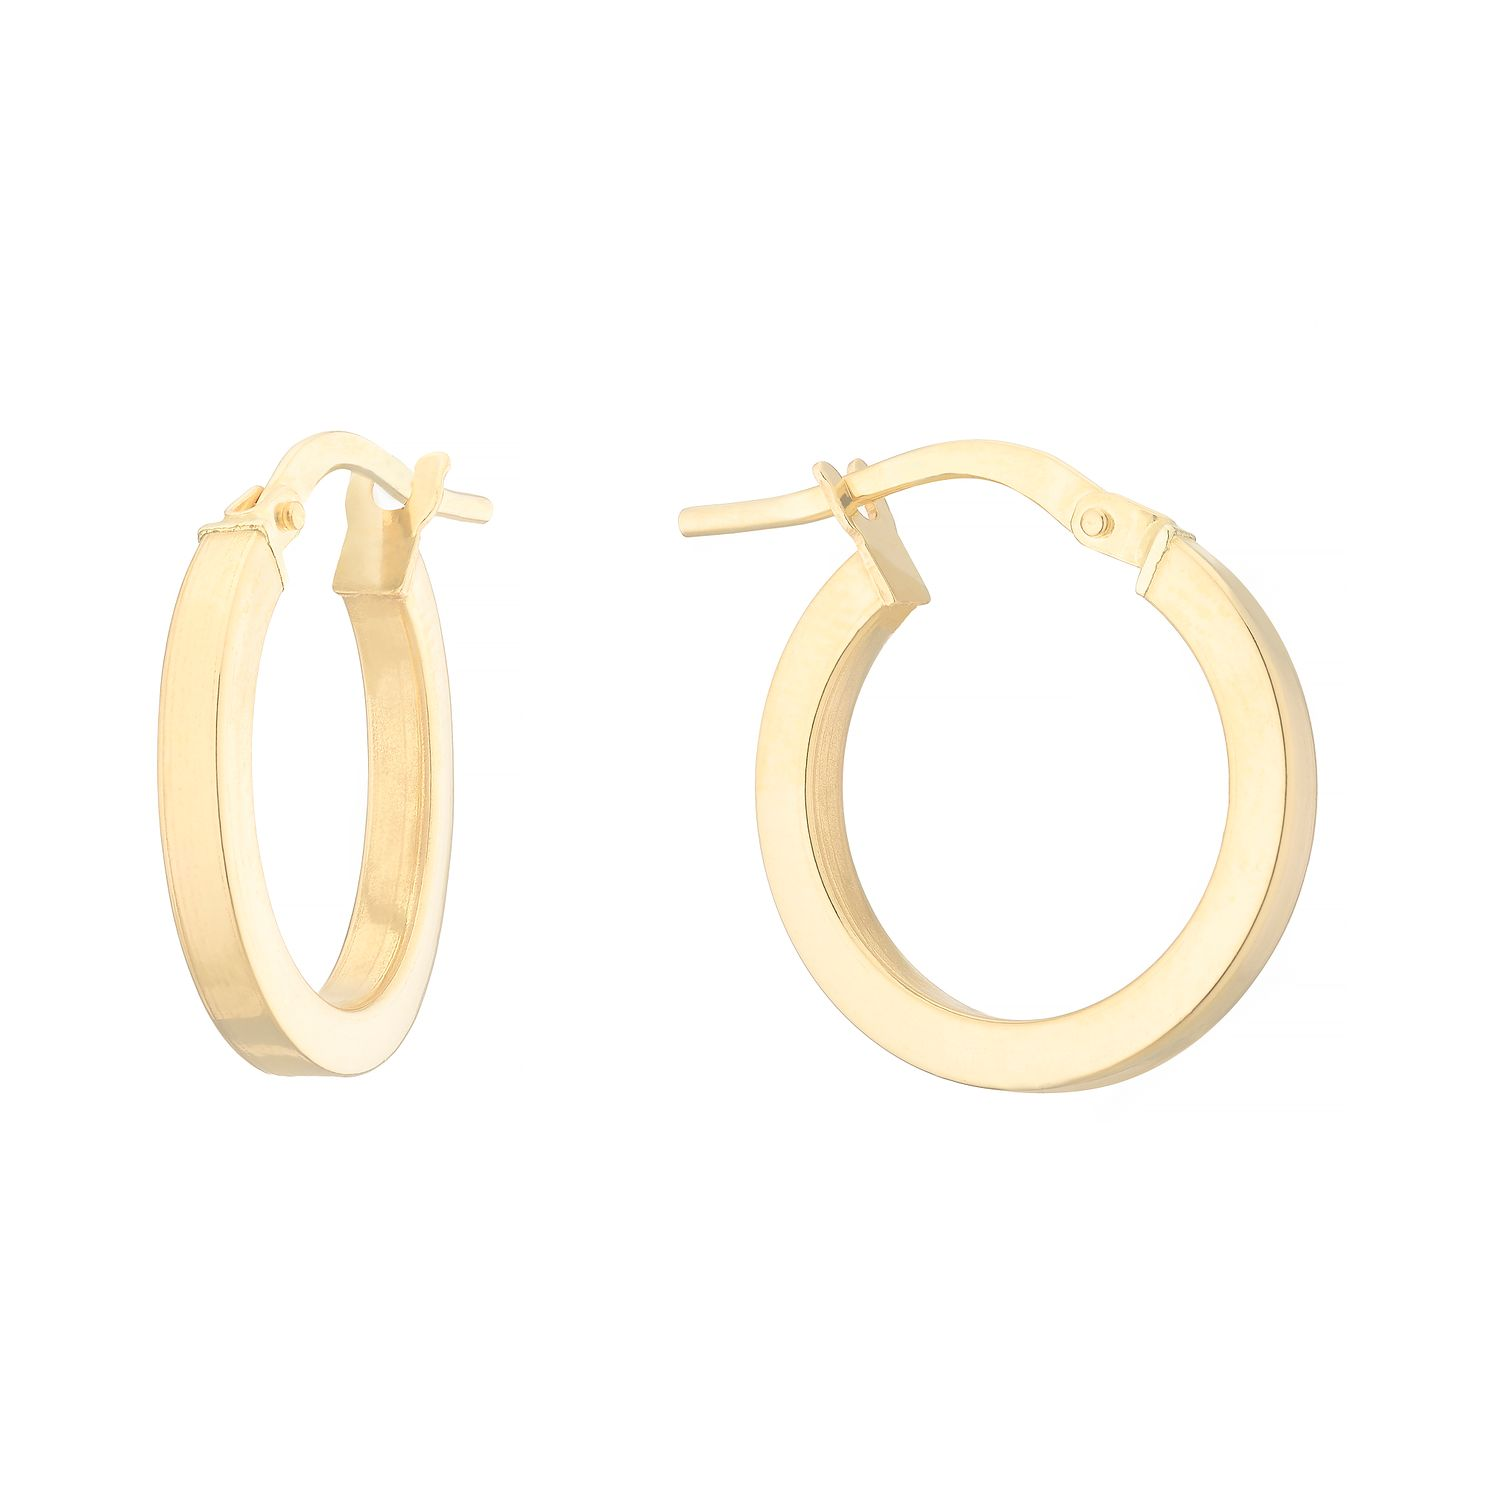 18ct Yellow Gold 13mm Square Tube Creole Hoop Earrings - Product number 4681606